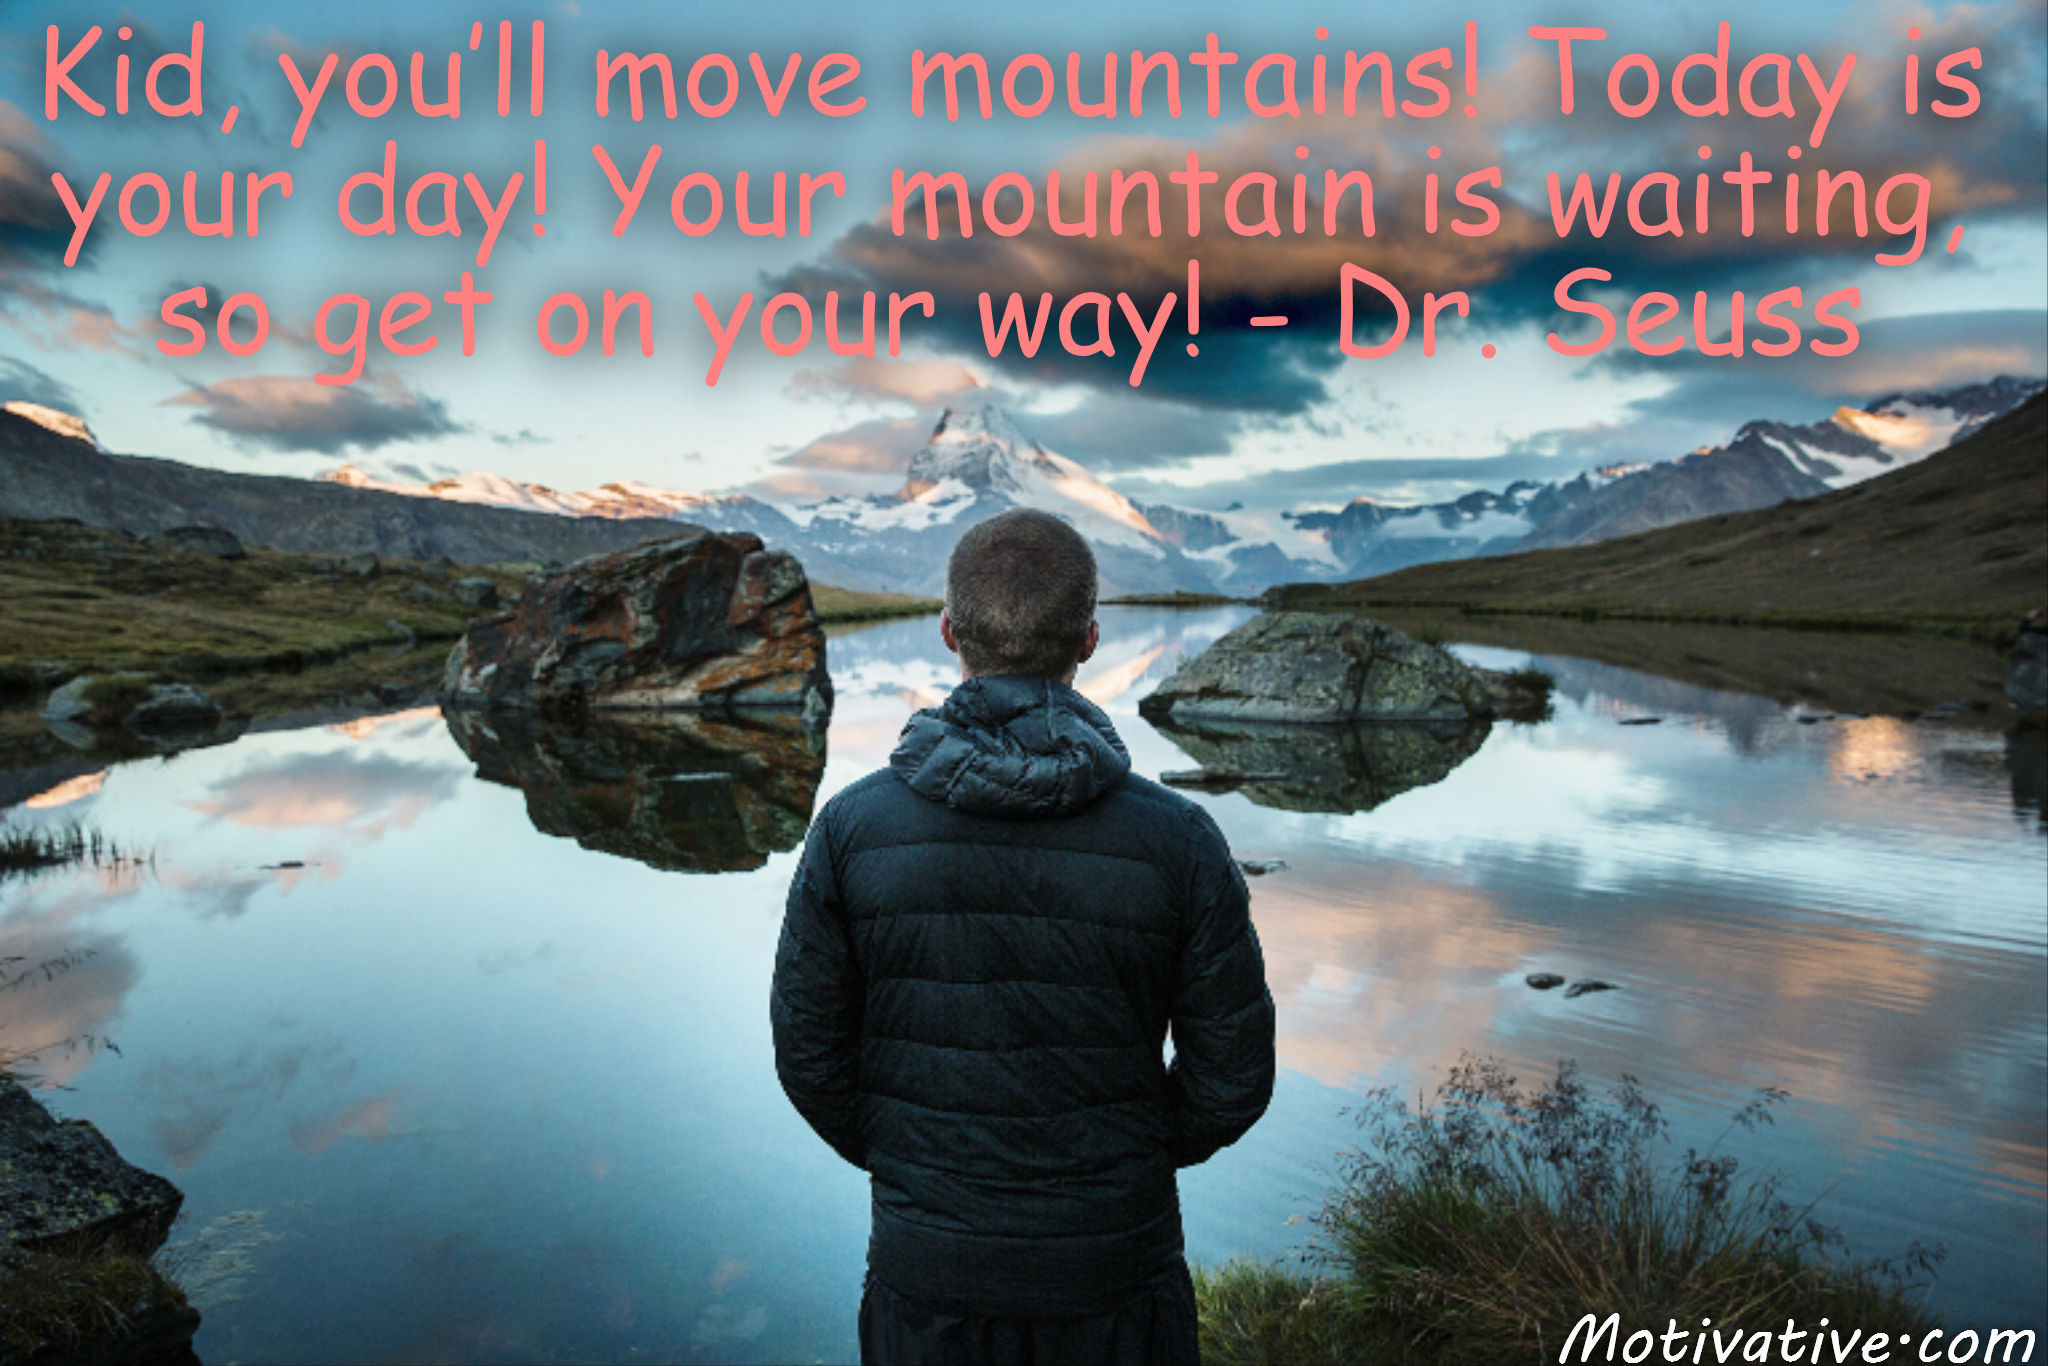 Kid, you'll move mountains! Today is your day! Your mountain is waiting, so get on your way! – Dr. Seuss